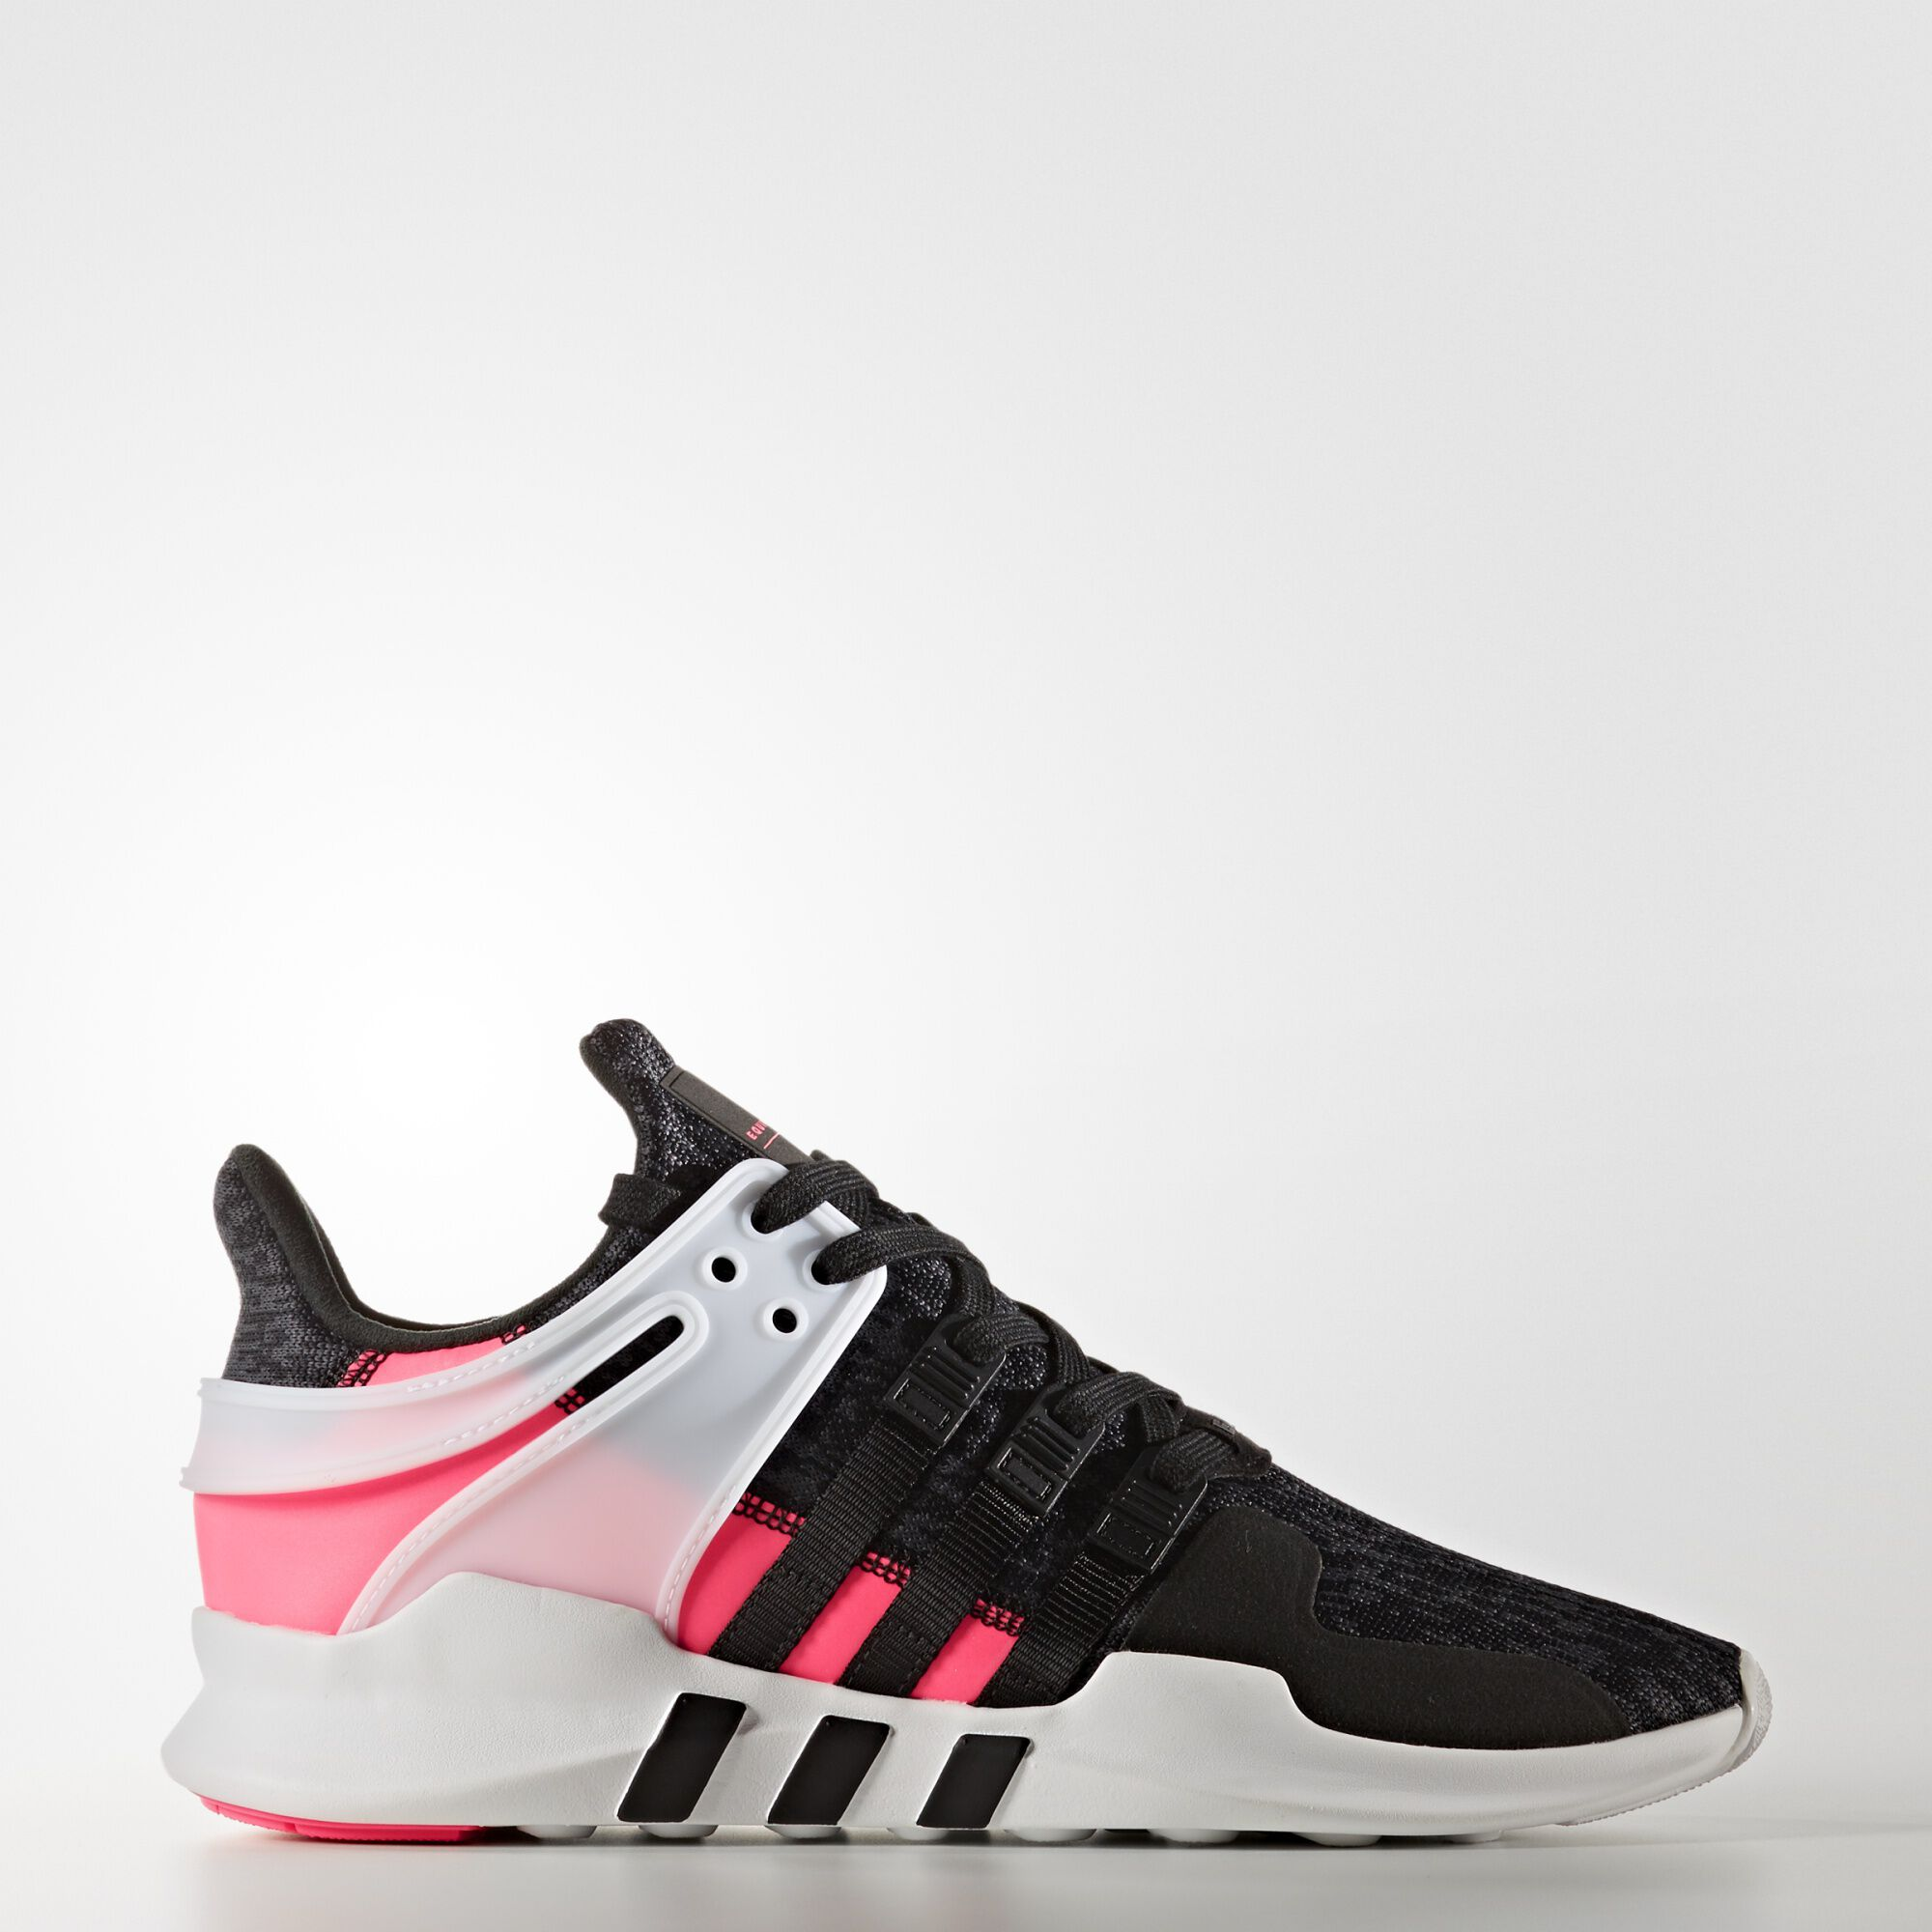 EQT Hoodies, Shirts and Track Pants by adidas Originals adidas US